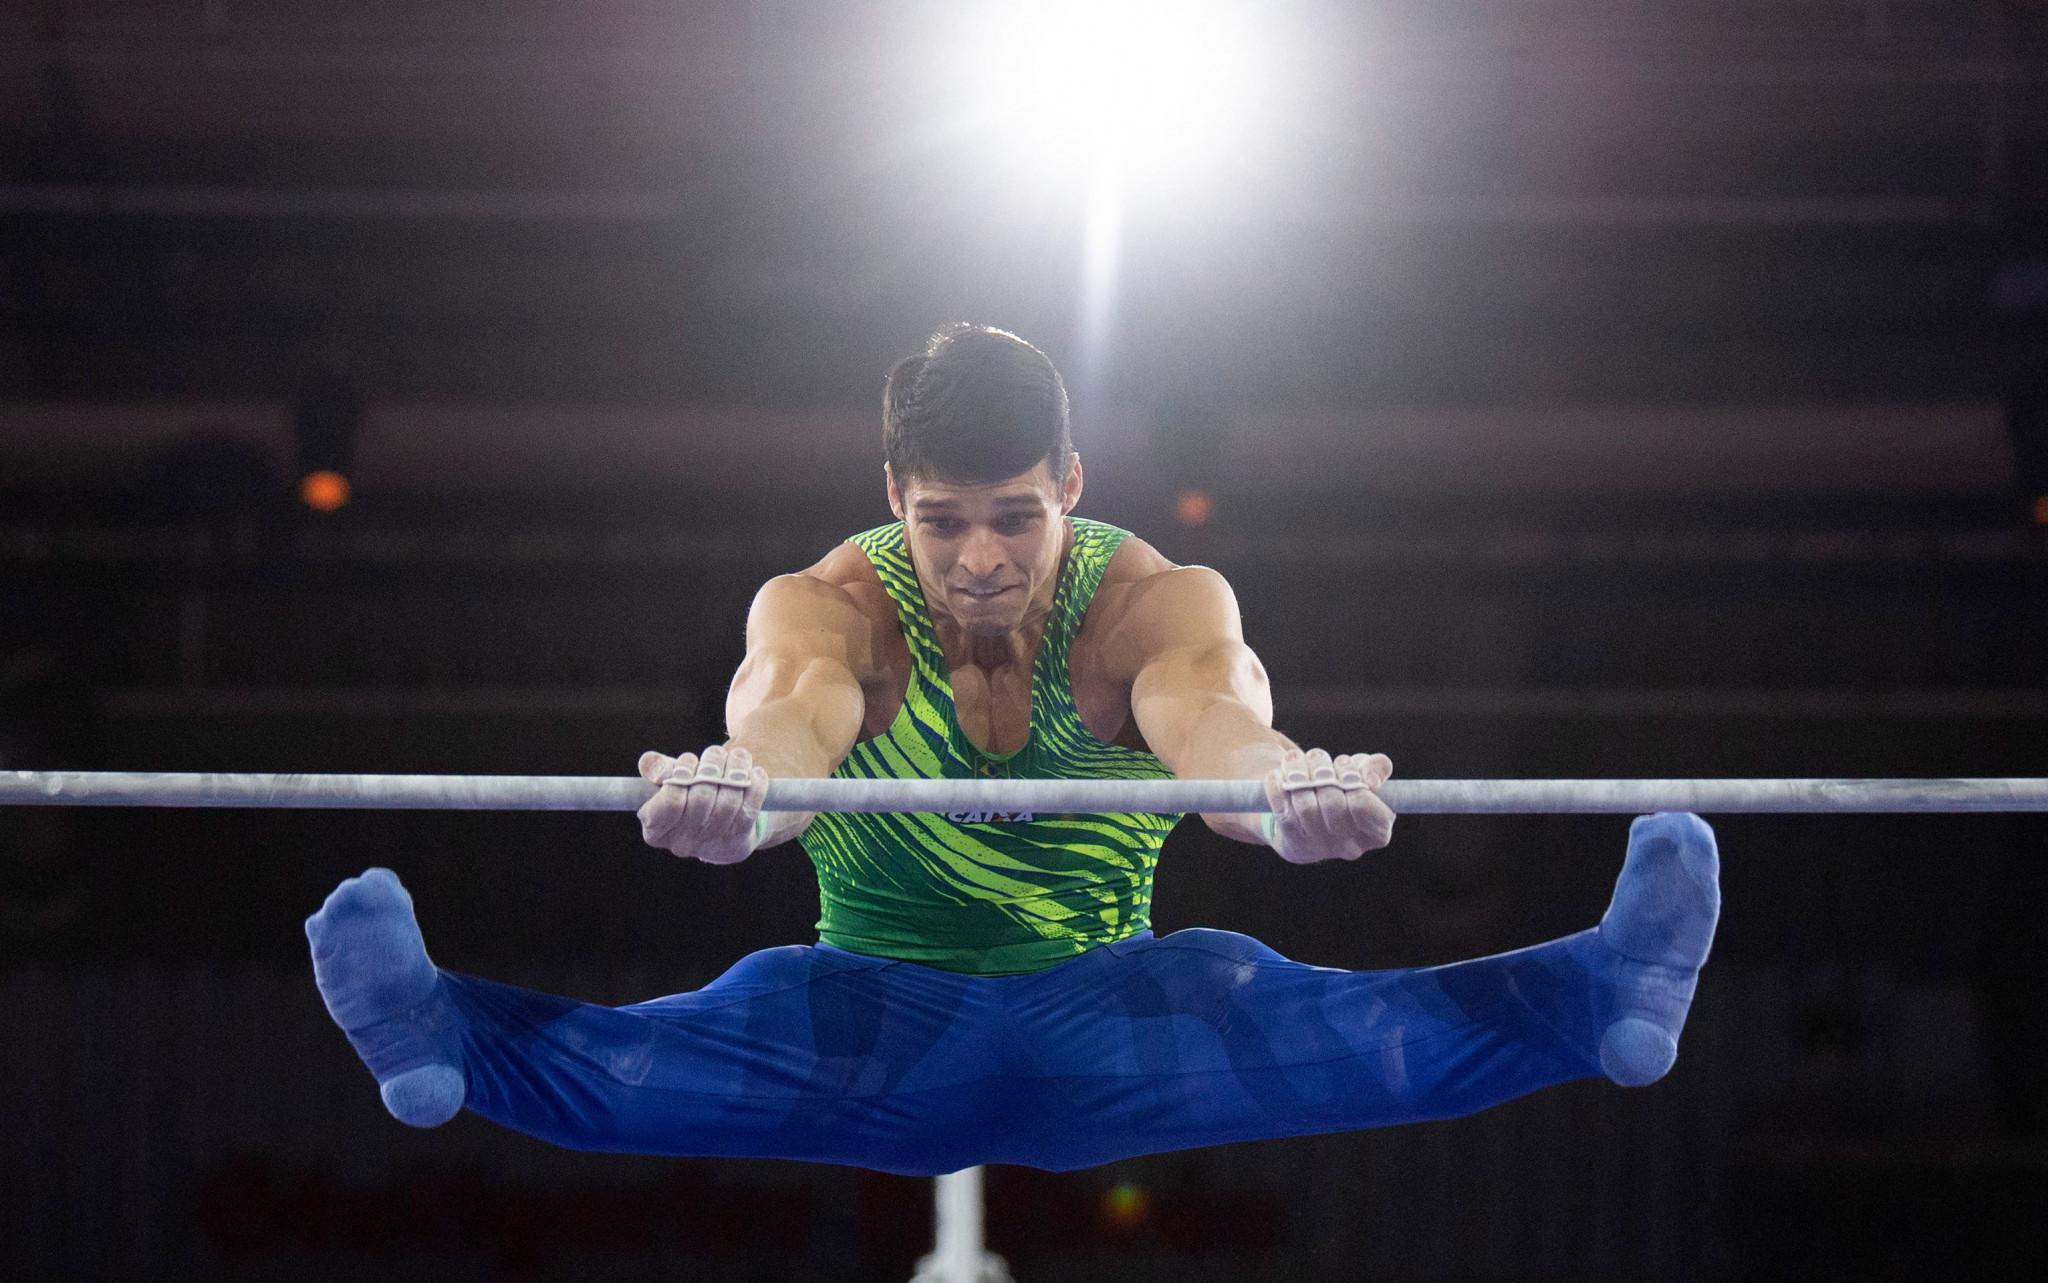 Francisco Barretto won three gold medals at Lima 2019 ©Getty Images